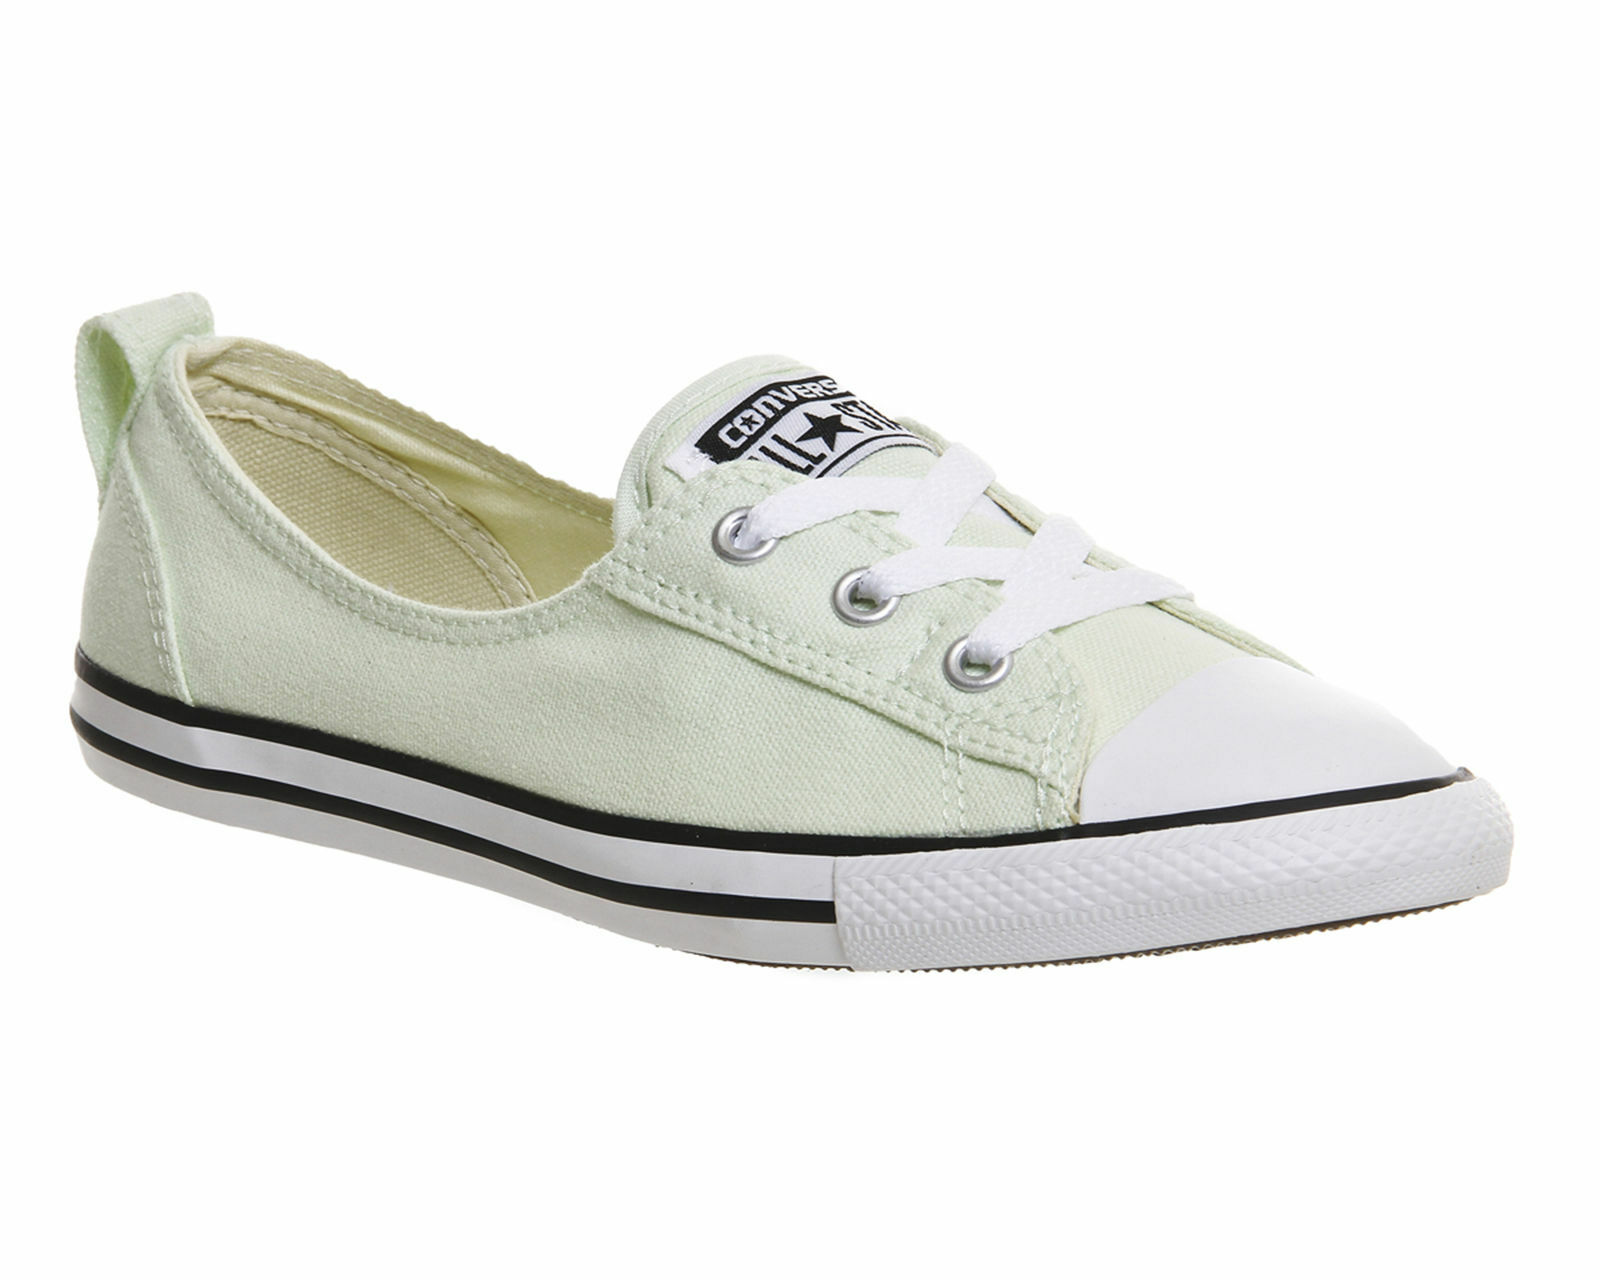 Buy Converse Trainers for Women | eBay